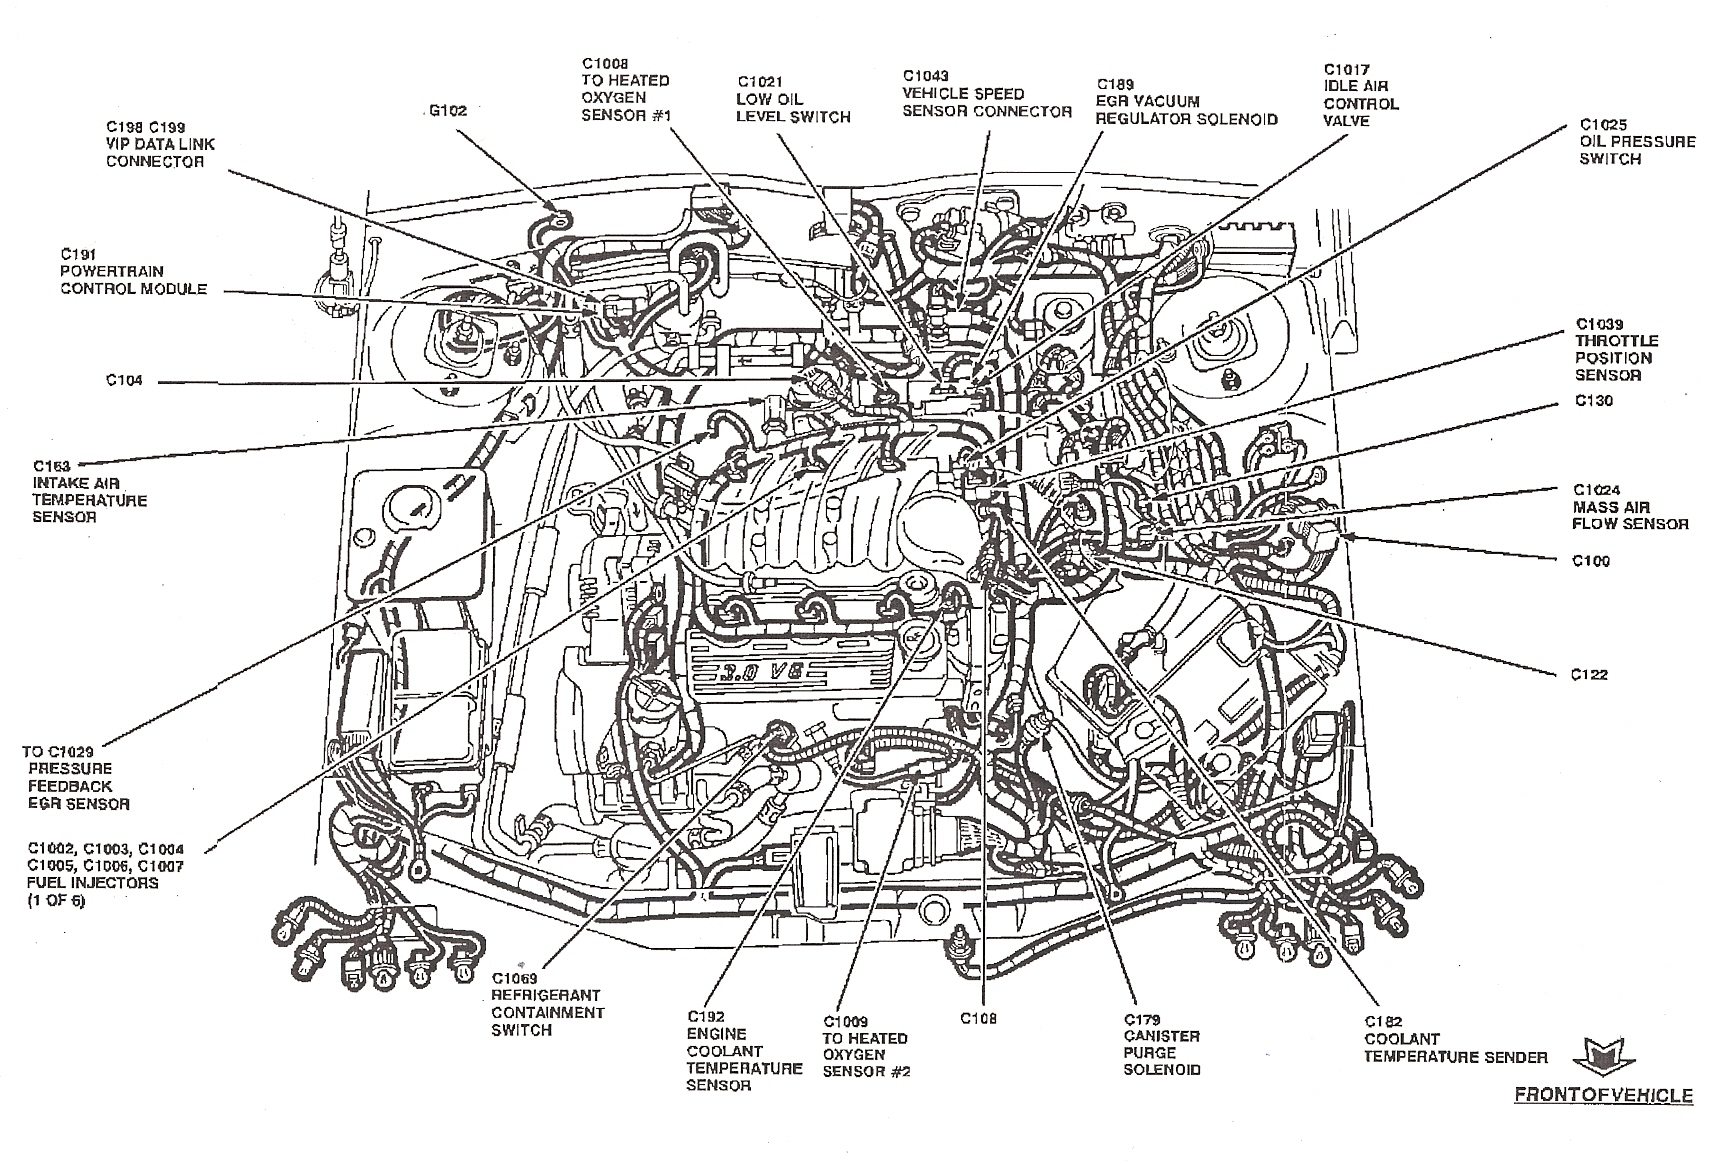 94 ford taurus page 2 fordforumsonline com 2001 ford taurus fuse box diagram under hood at virtualis.co